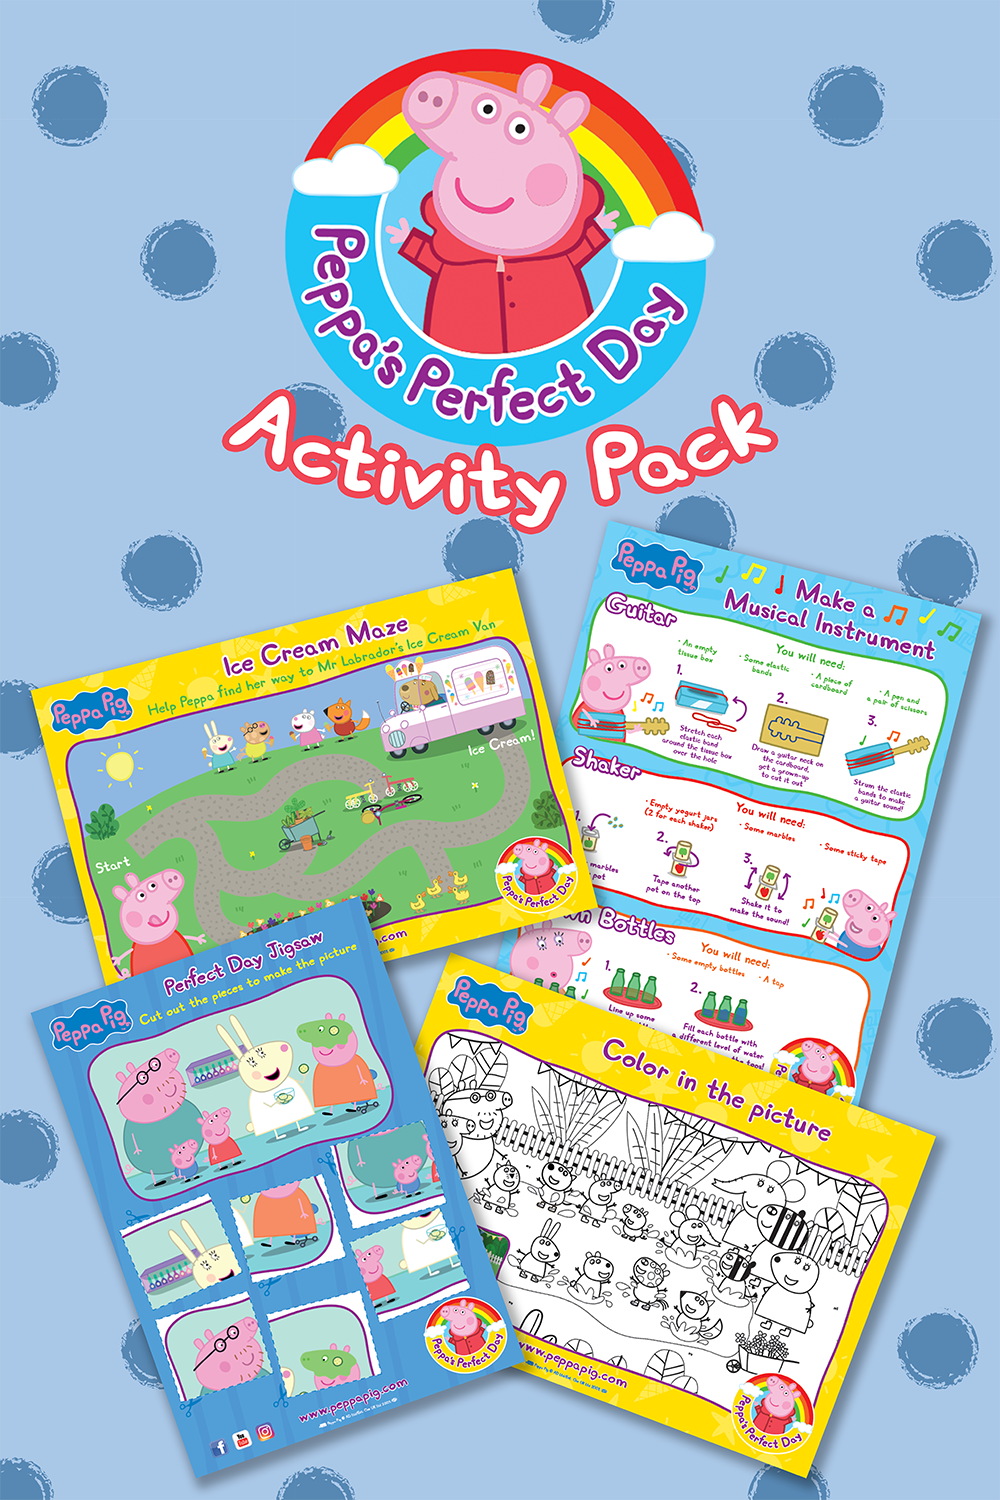 Peppa's Perfect Day Activity Pack